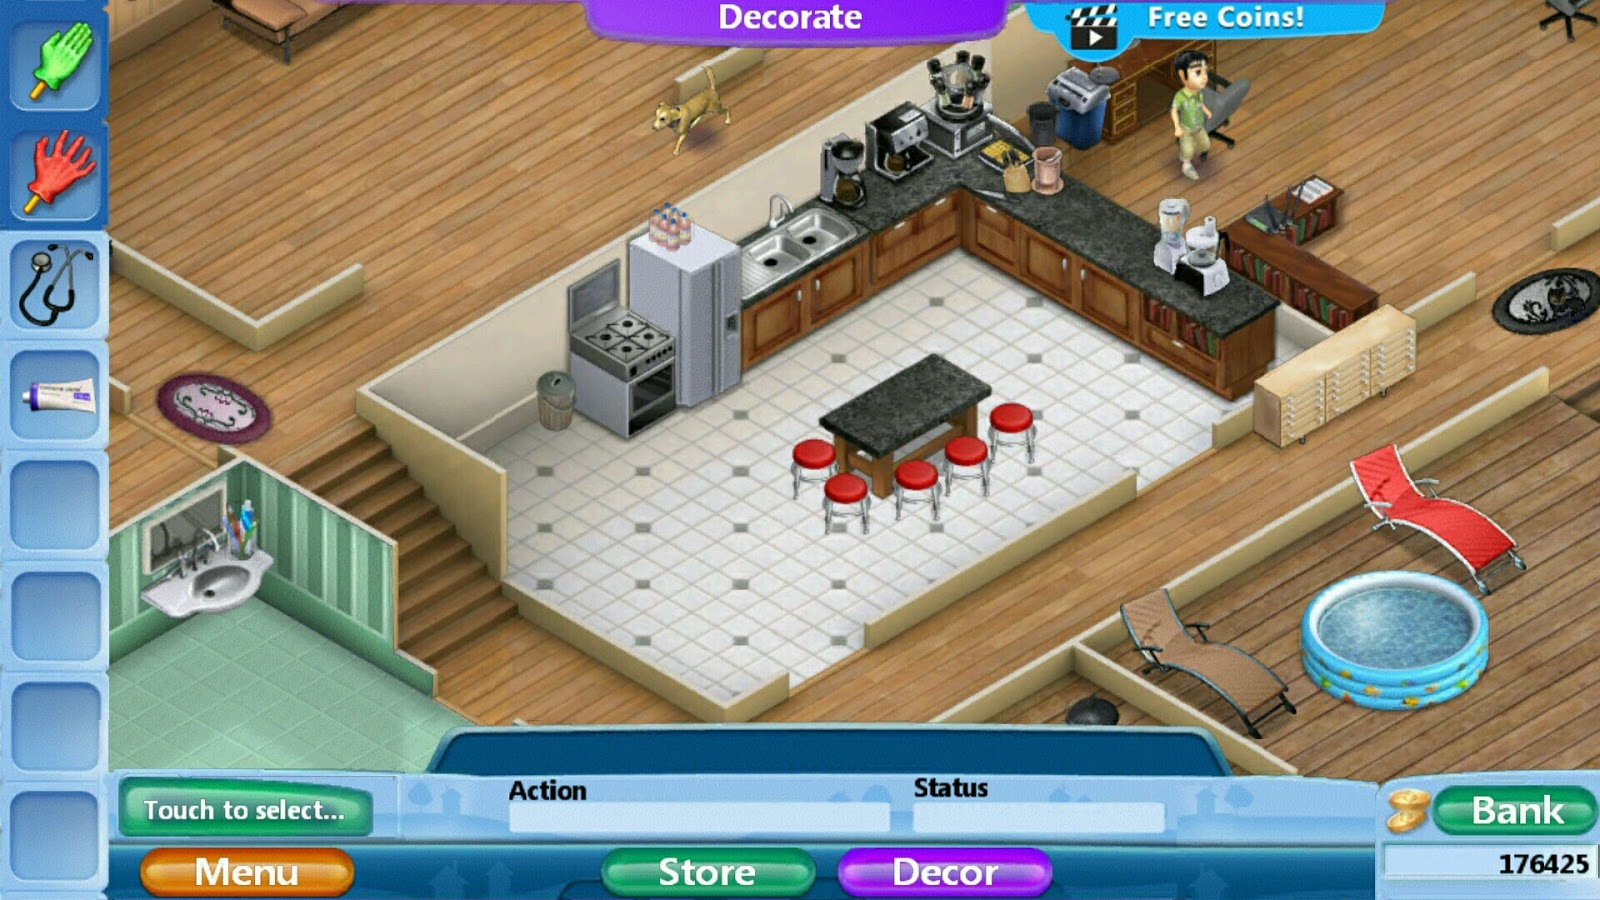 Virtual Families 2 Home Renovation: Kitchen Remodel (Pictures)